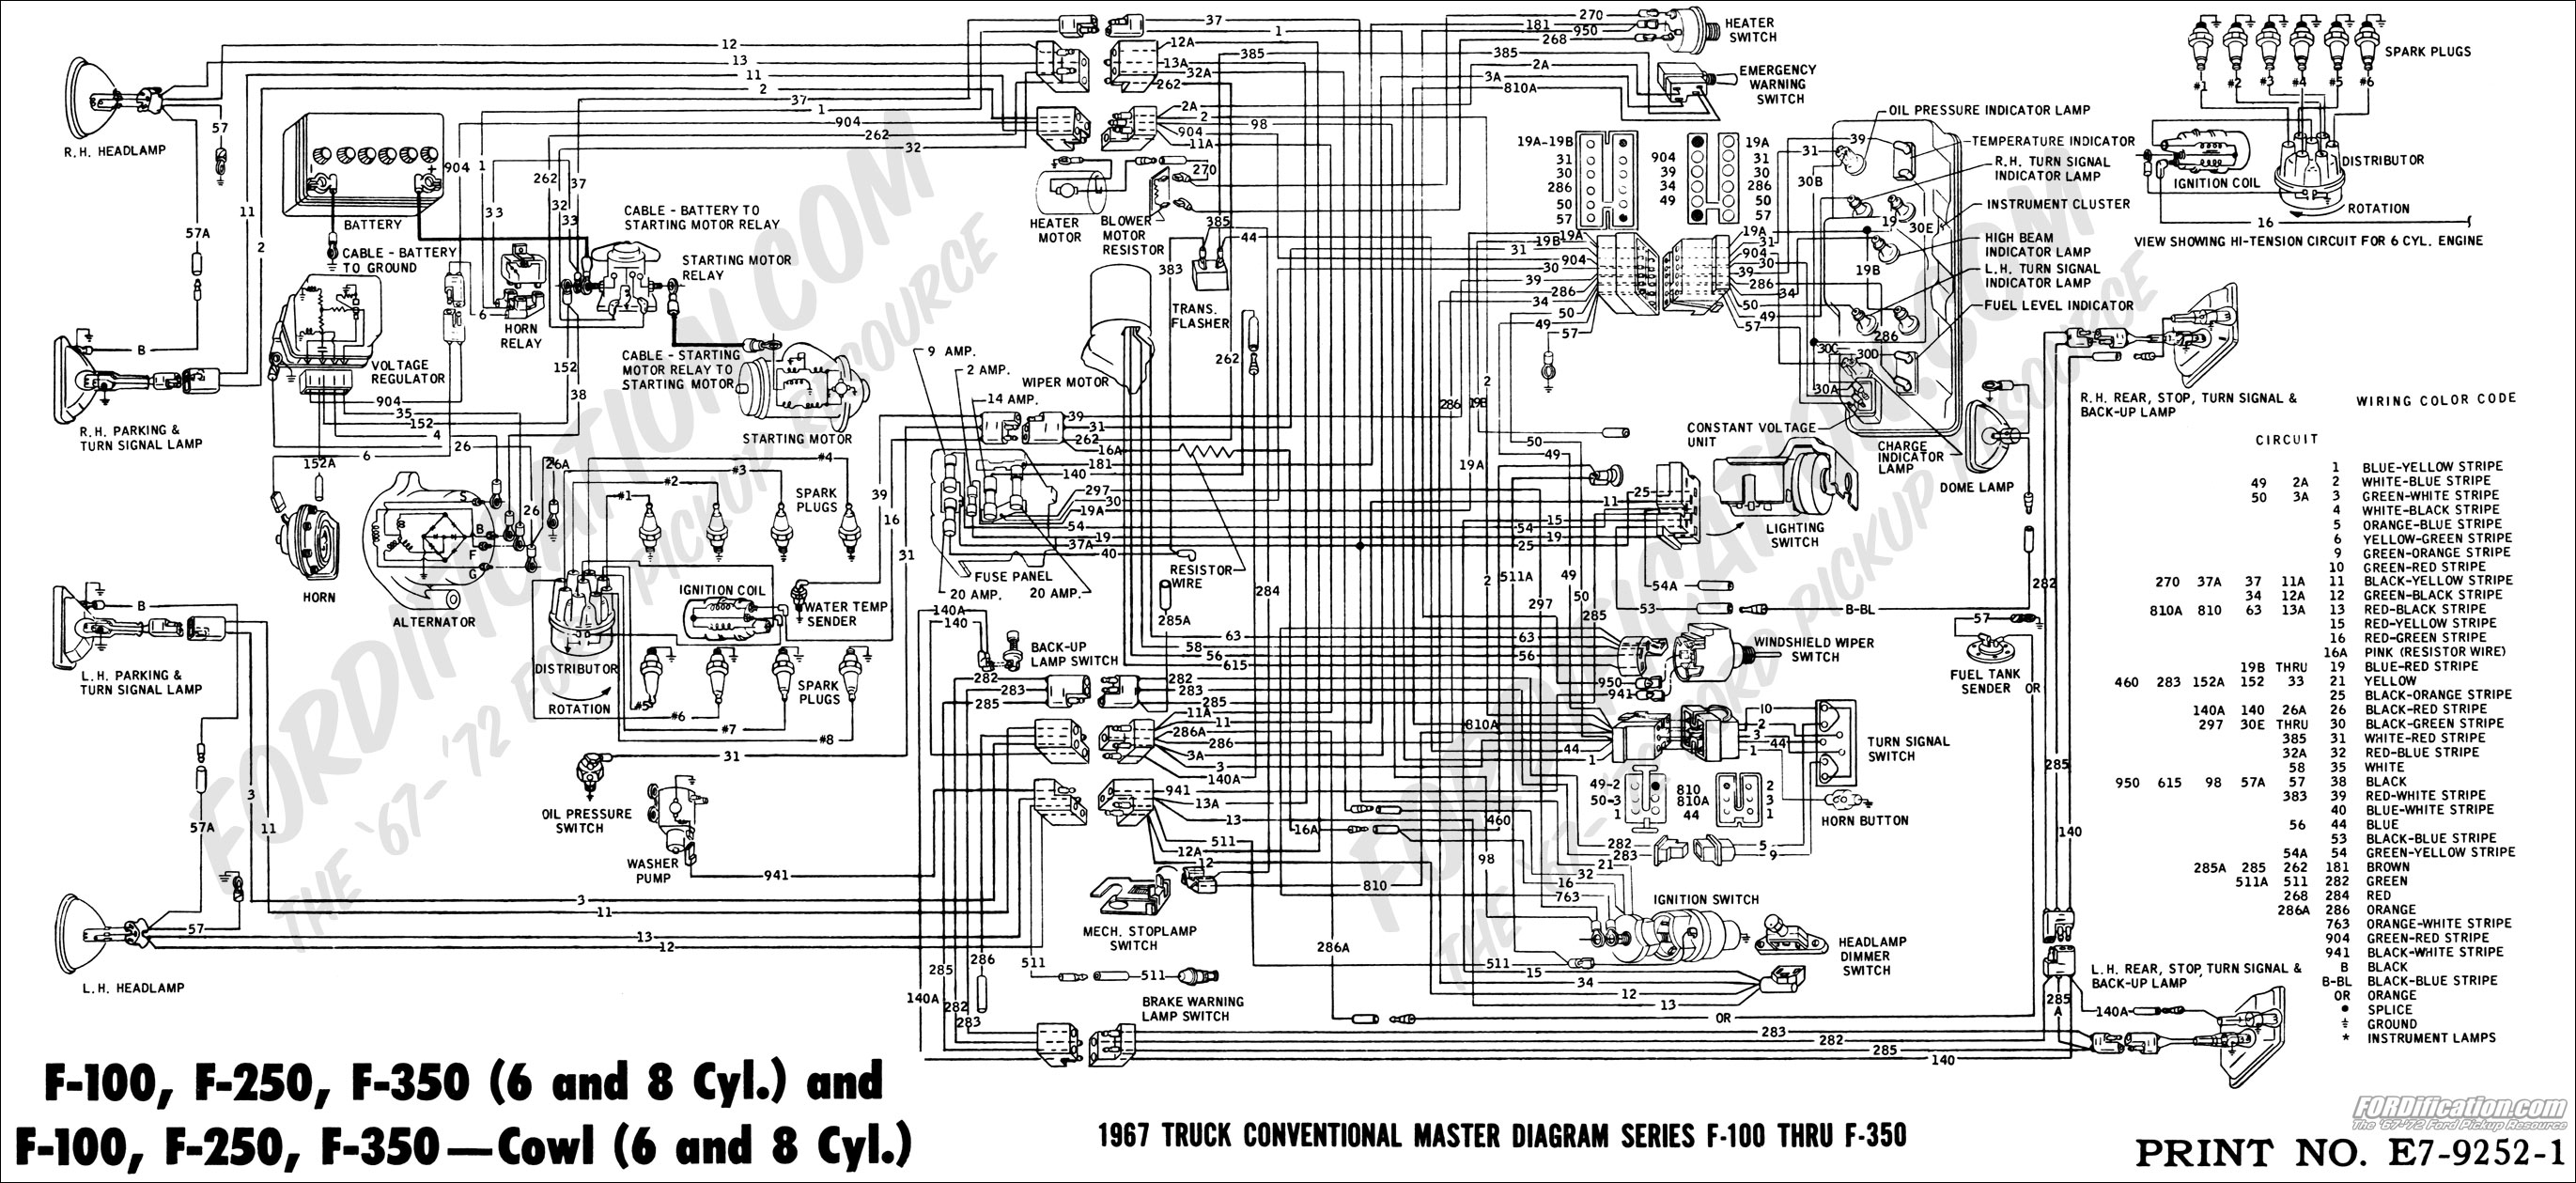 1982 Ford F150 Wiring Diagram - wiring diagrams schematics